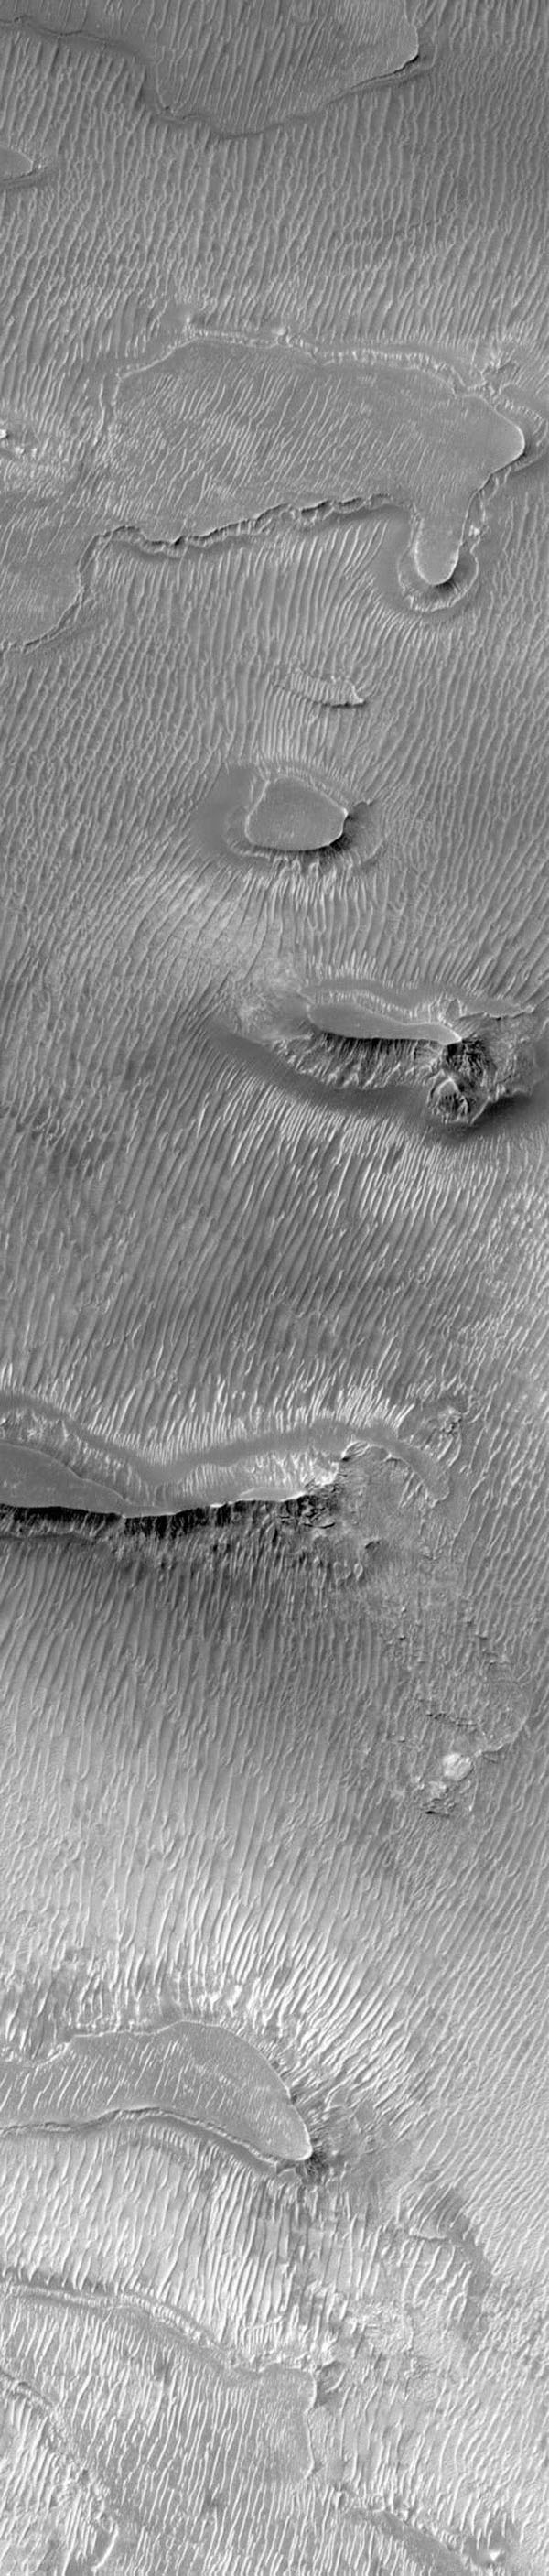 NASA's Mars Global Surveyor shows dark, ridged surfaces, common in the central floors of Valles Marineris and elsewhere in the equatorial regions of Mars.